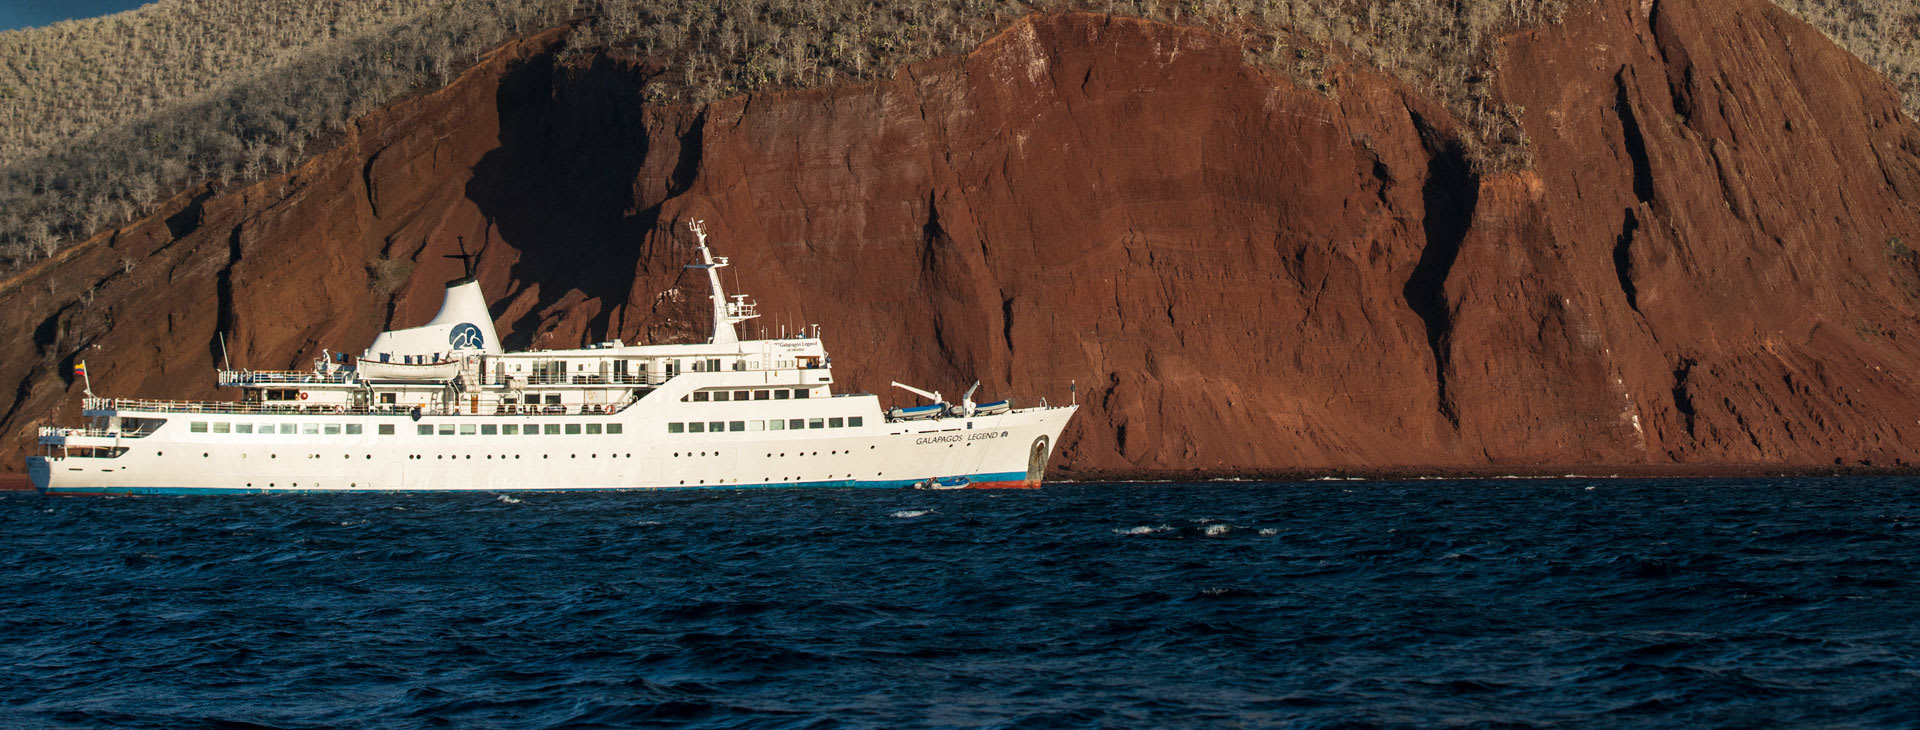 Galapagos Legend seen from the distance